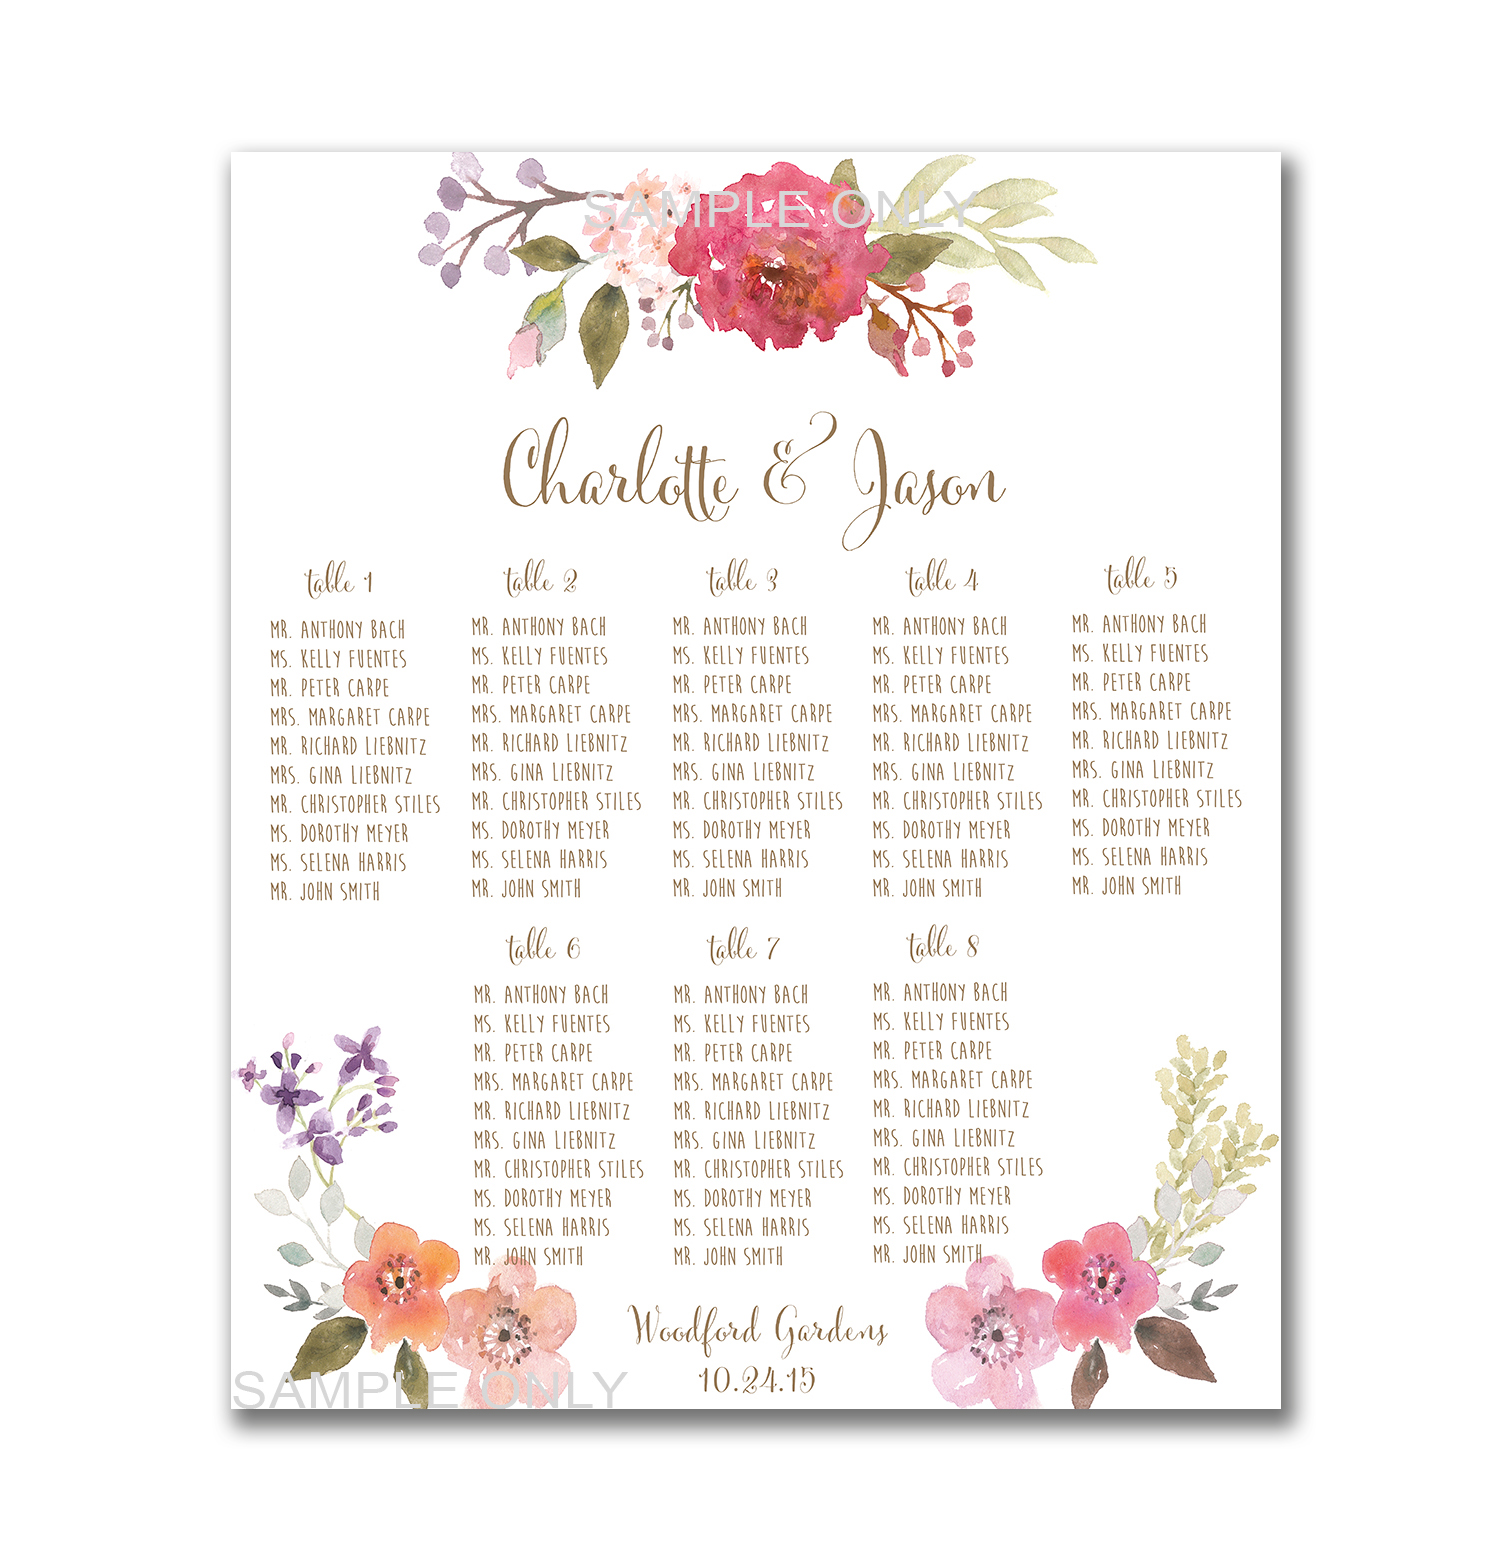 Wedding Table Seating Chart Printable 50 130 Guests Customized Plan Pritnable